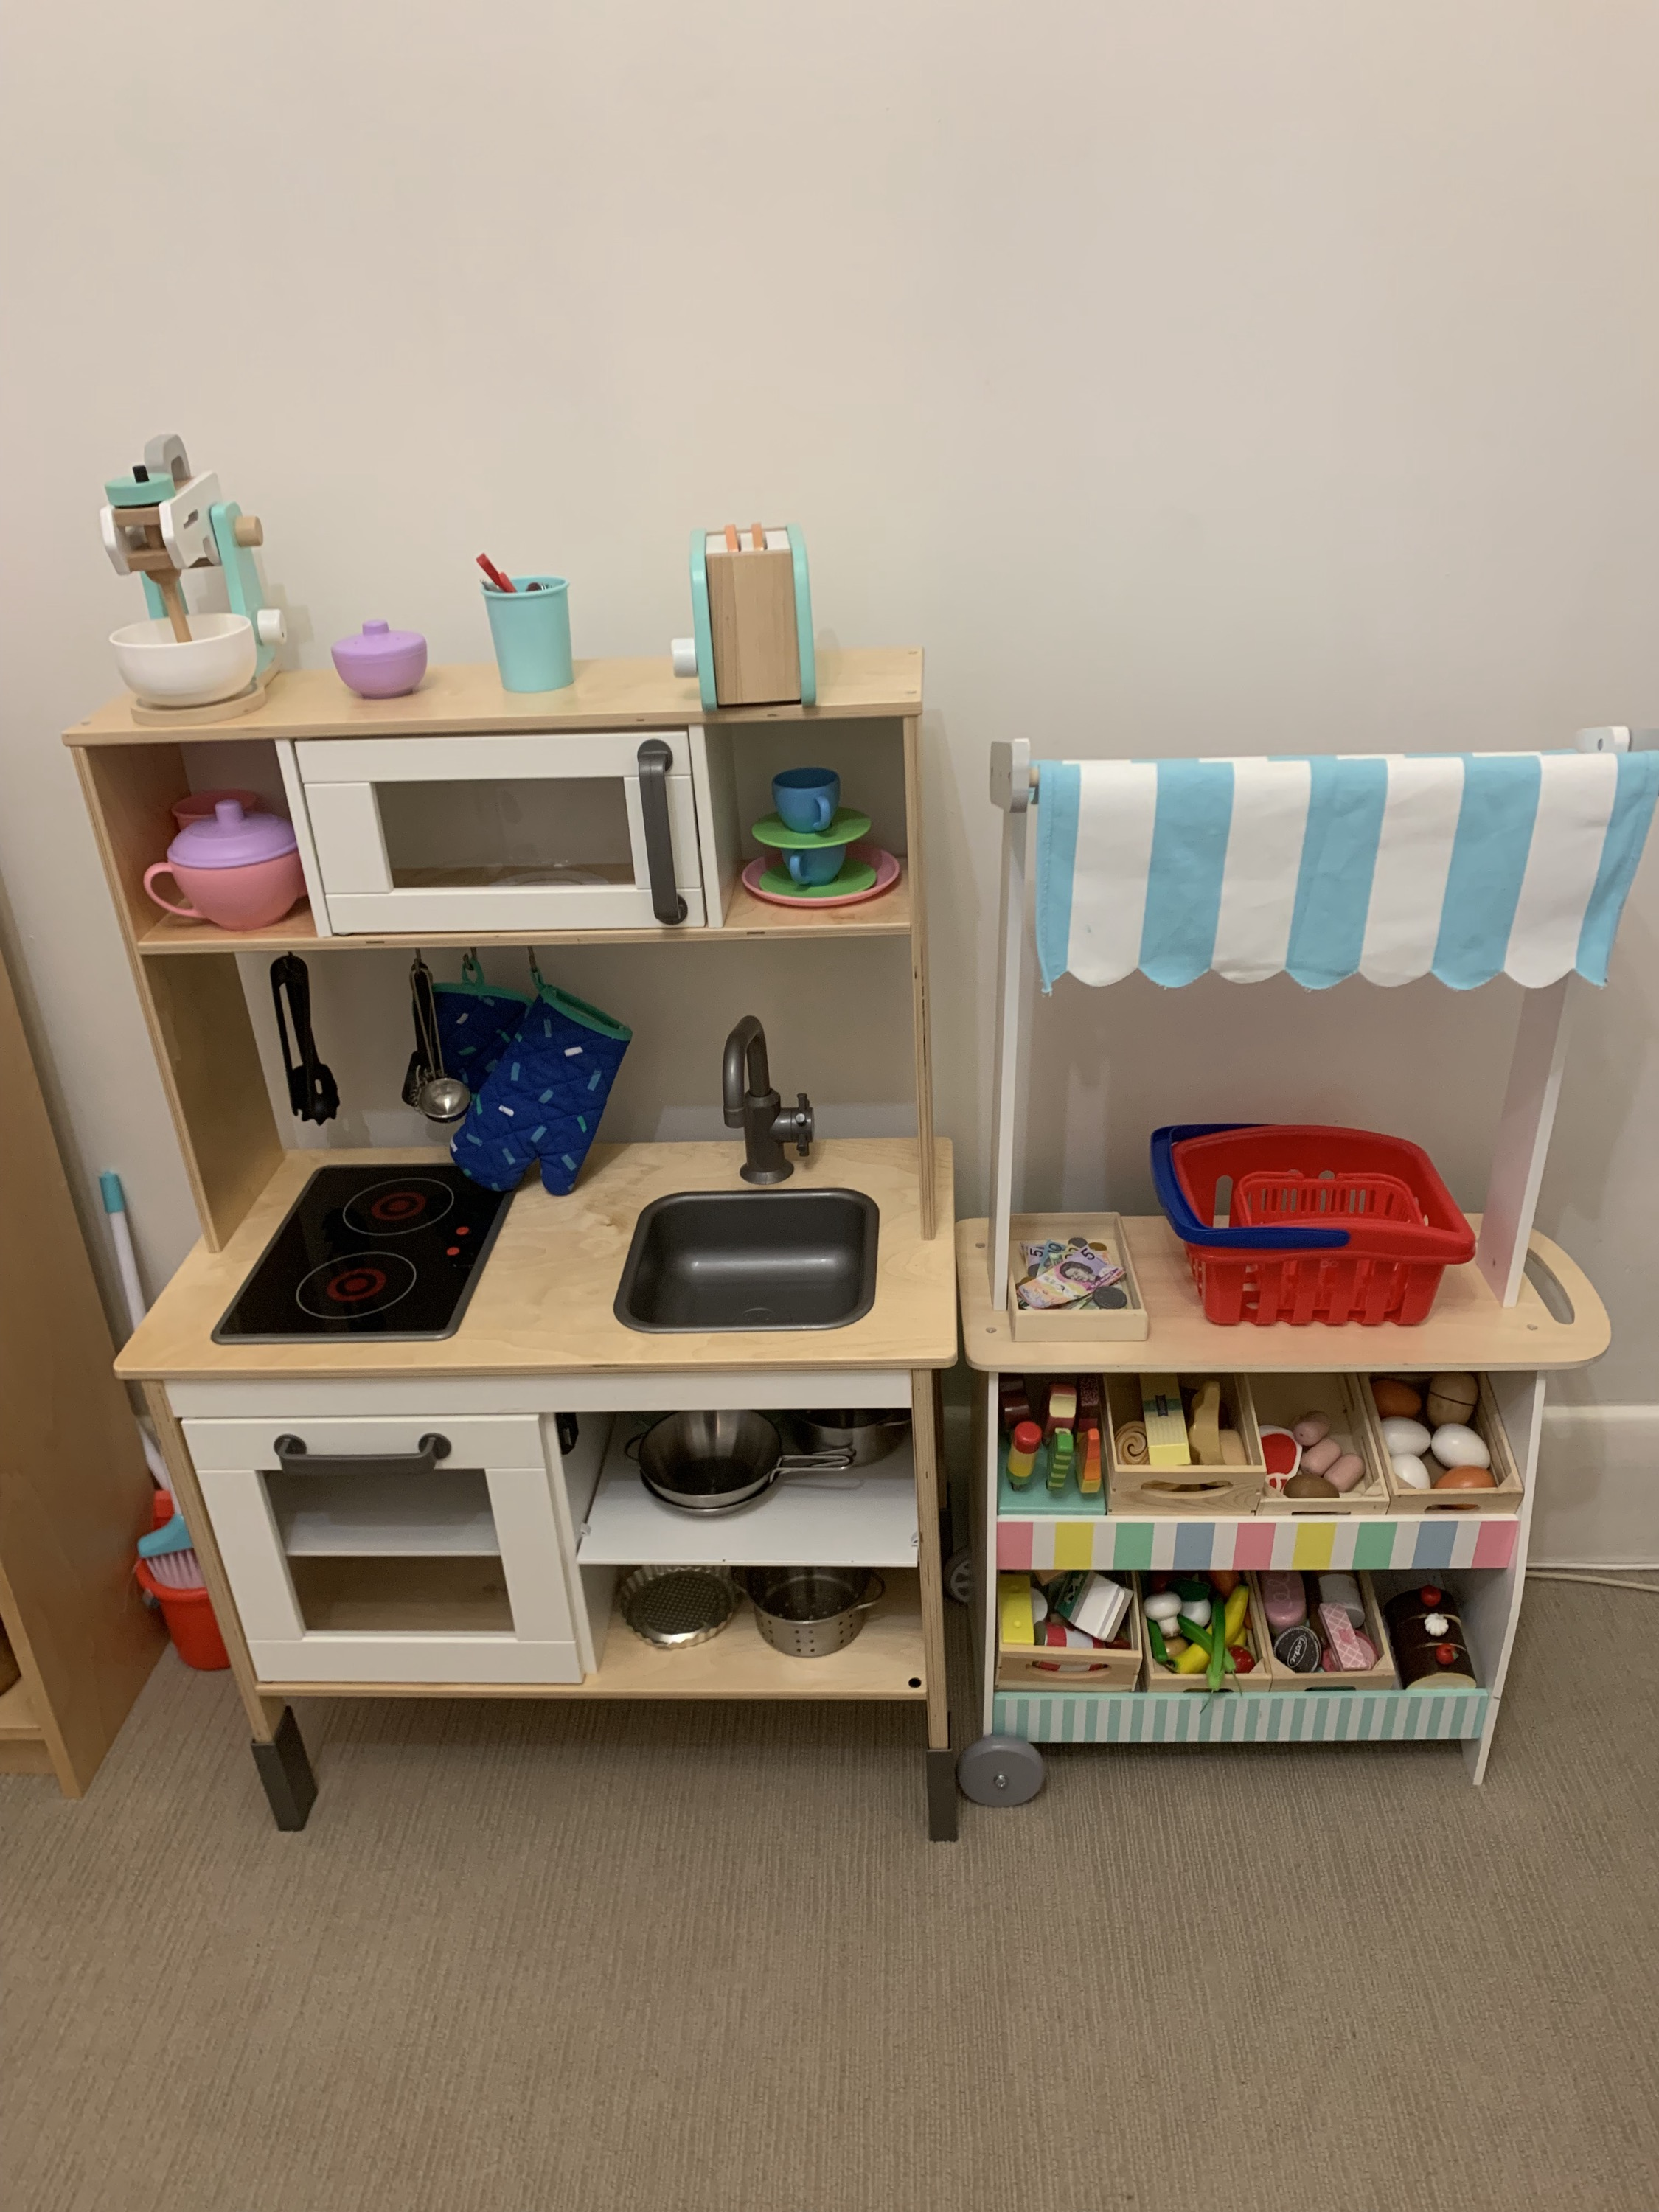 Kitchen and shop - real life and role play